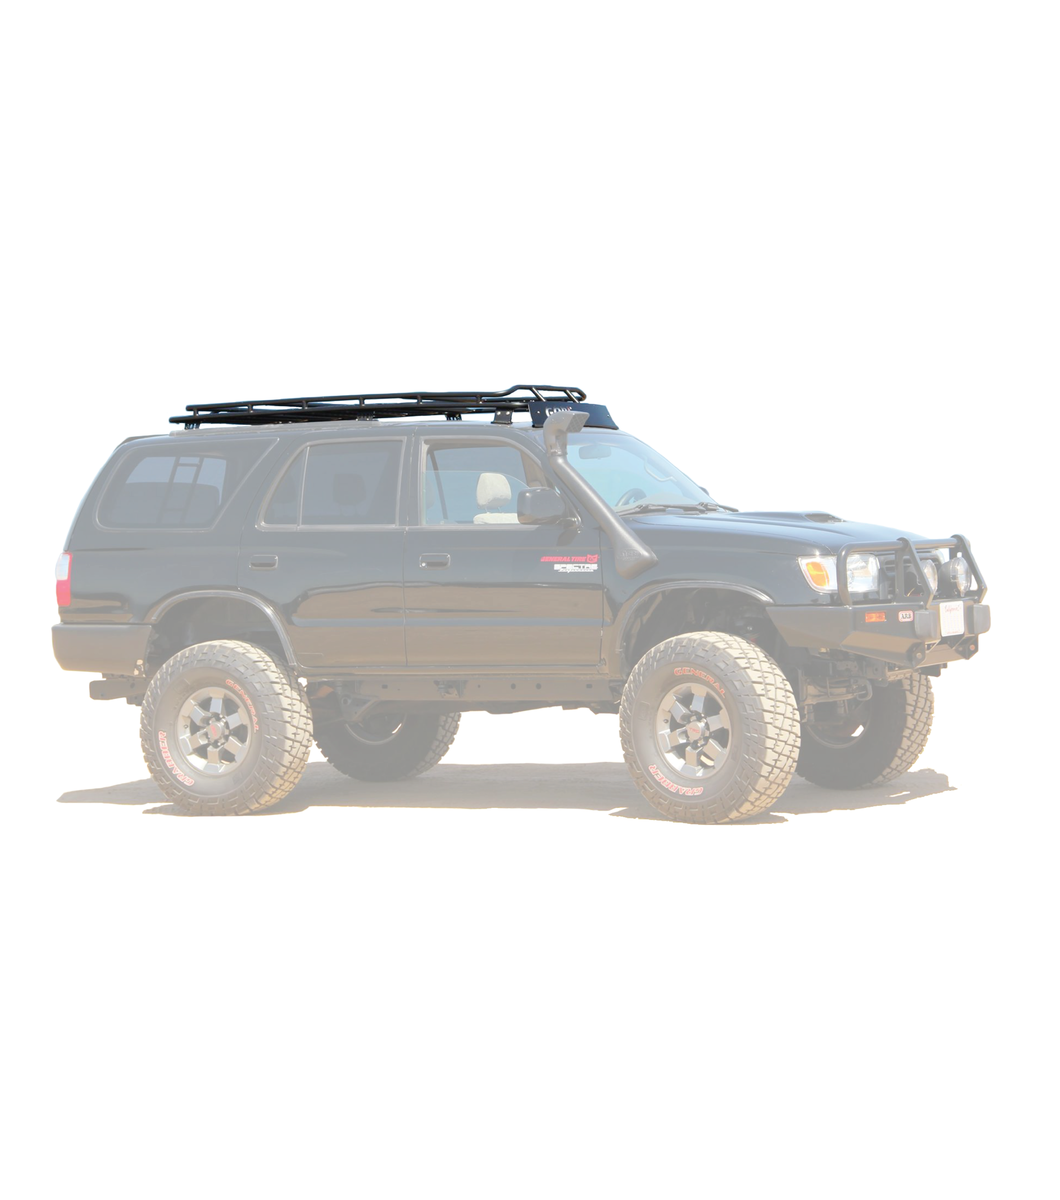 Gobi Toyota 4runner 3rd Gen Stealth Rack Multi Light Setup In 2020 Toyota 4runner 4runner Toyota